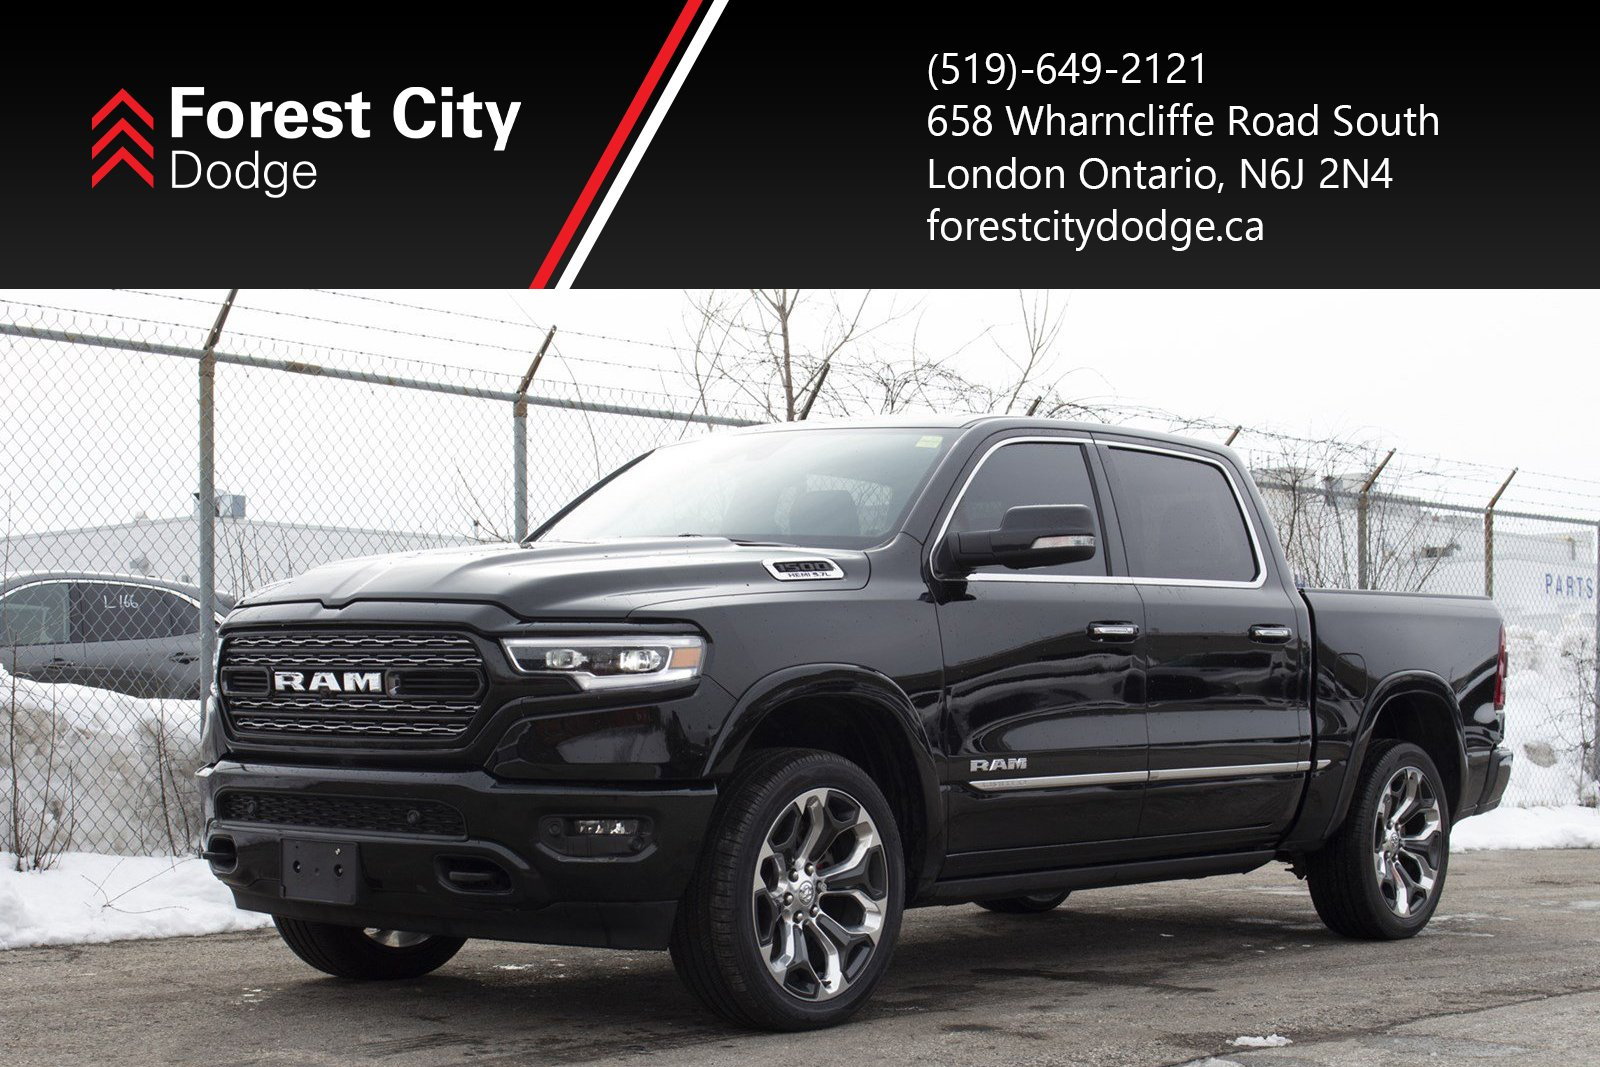 Pre-Owned 2019 Ram 1500 LIMITED, LEATHER MOONROOF, CHROME WHEELS, HEATED STEERING WHEEL